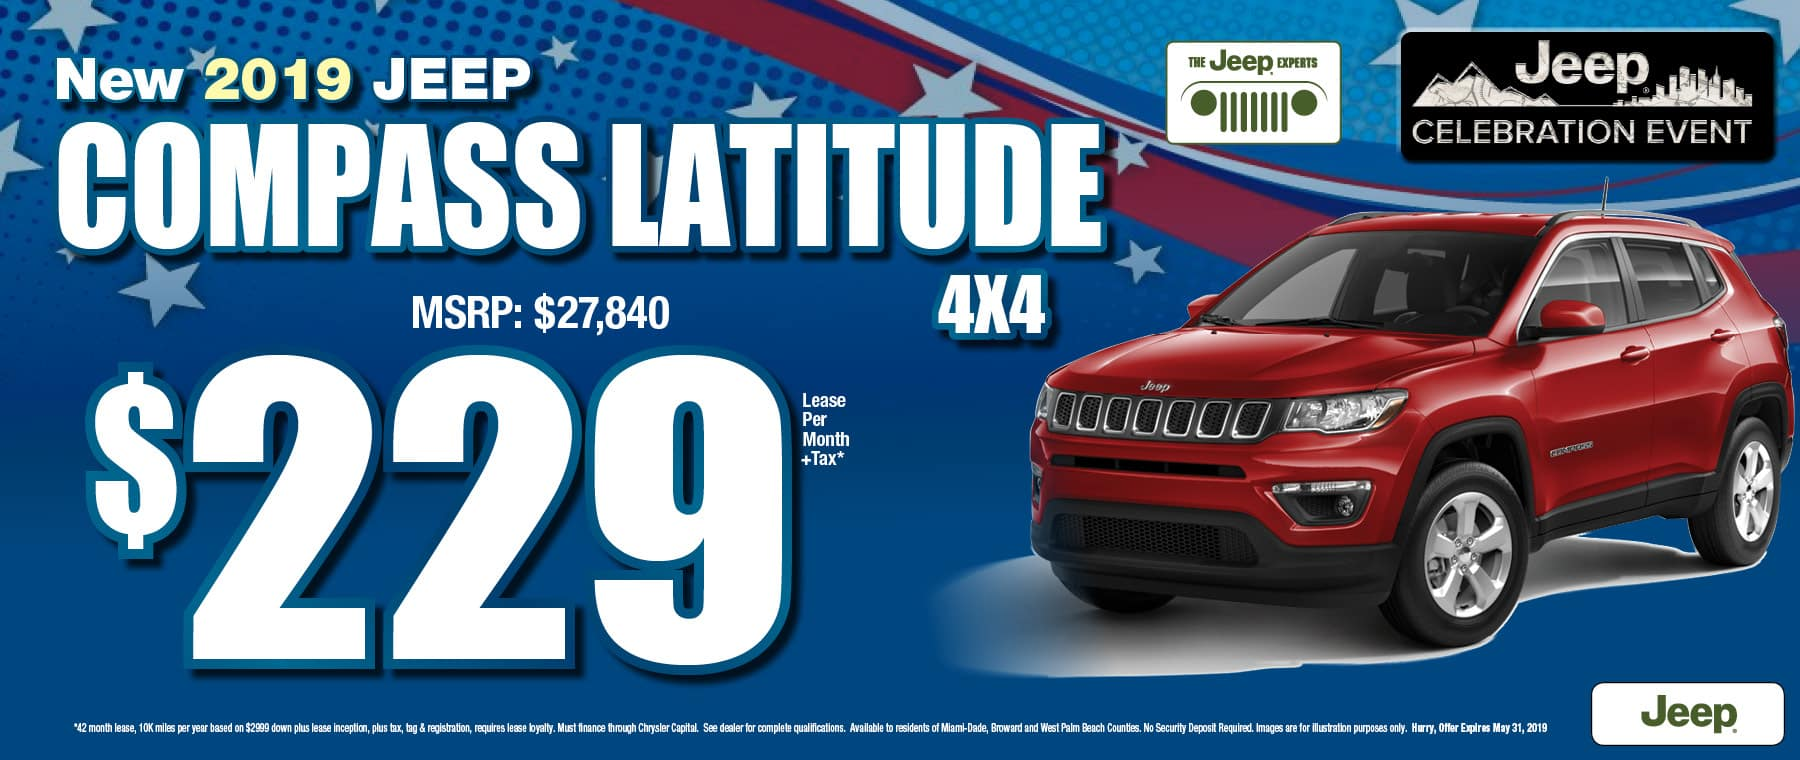 Compass Lease $229